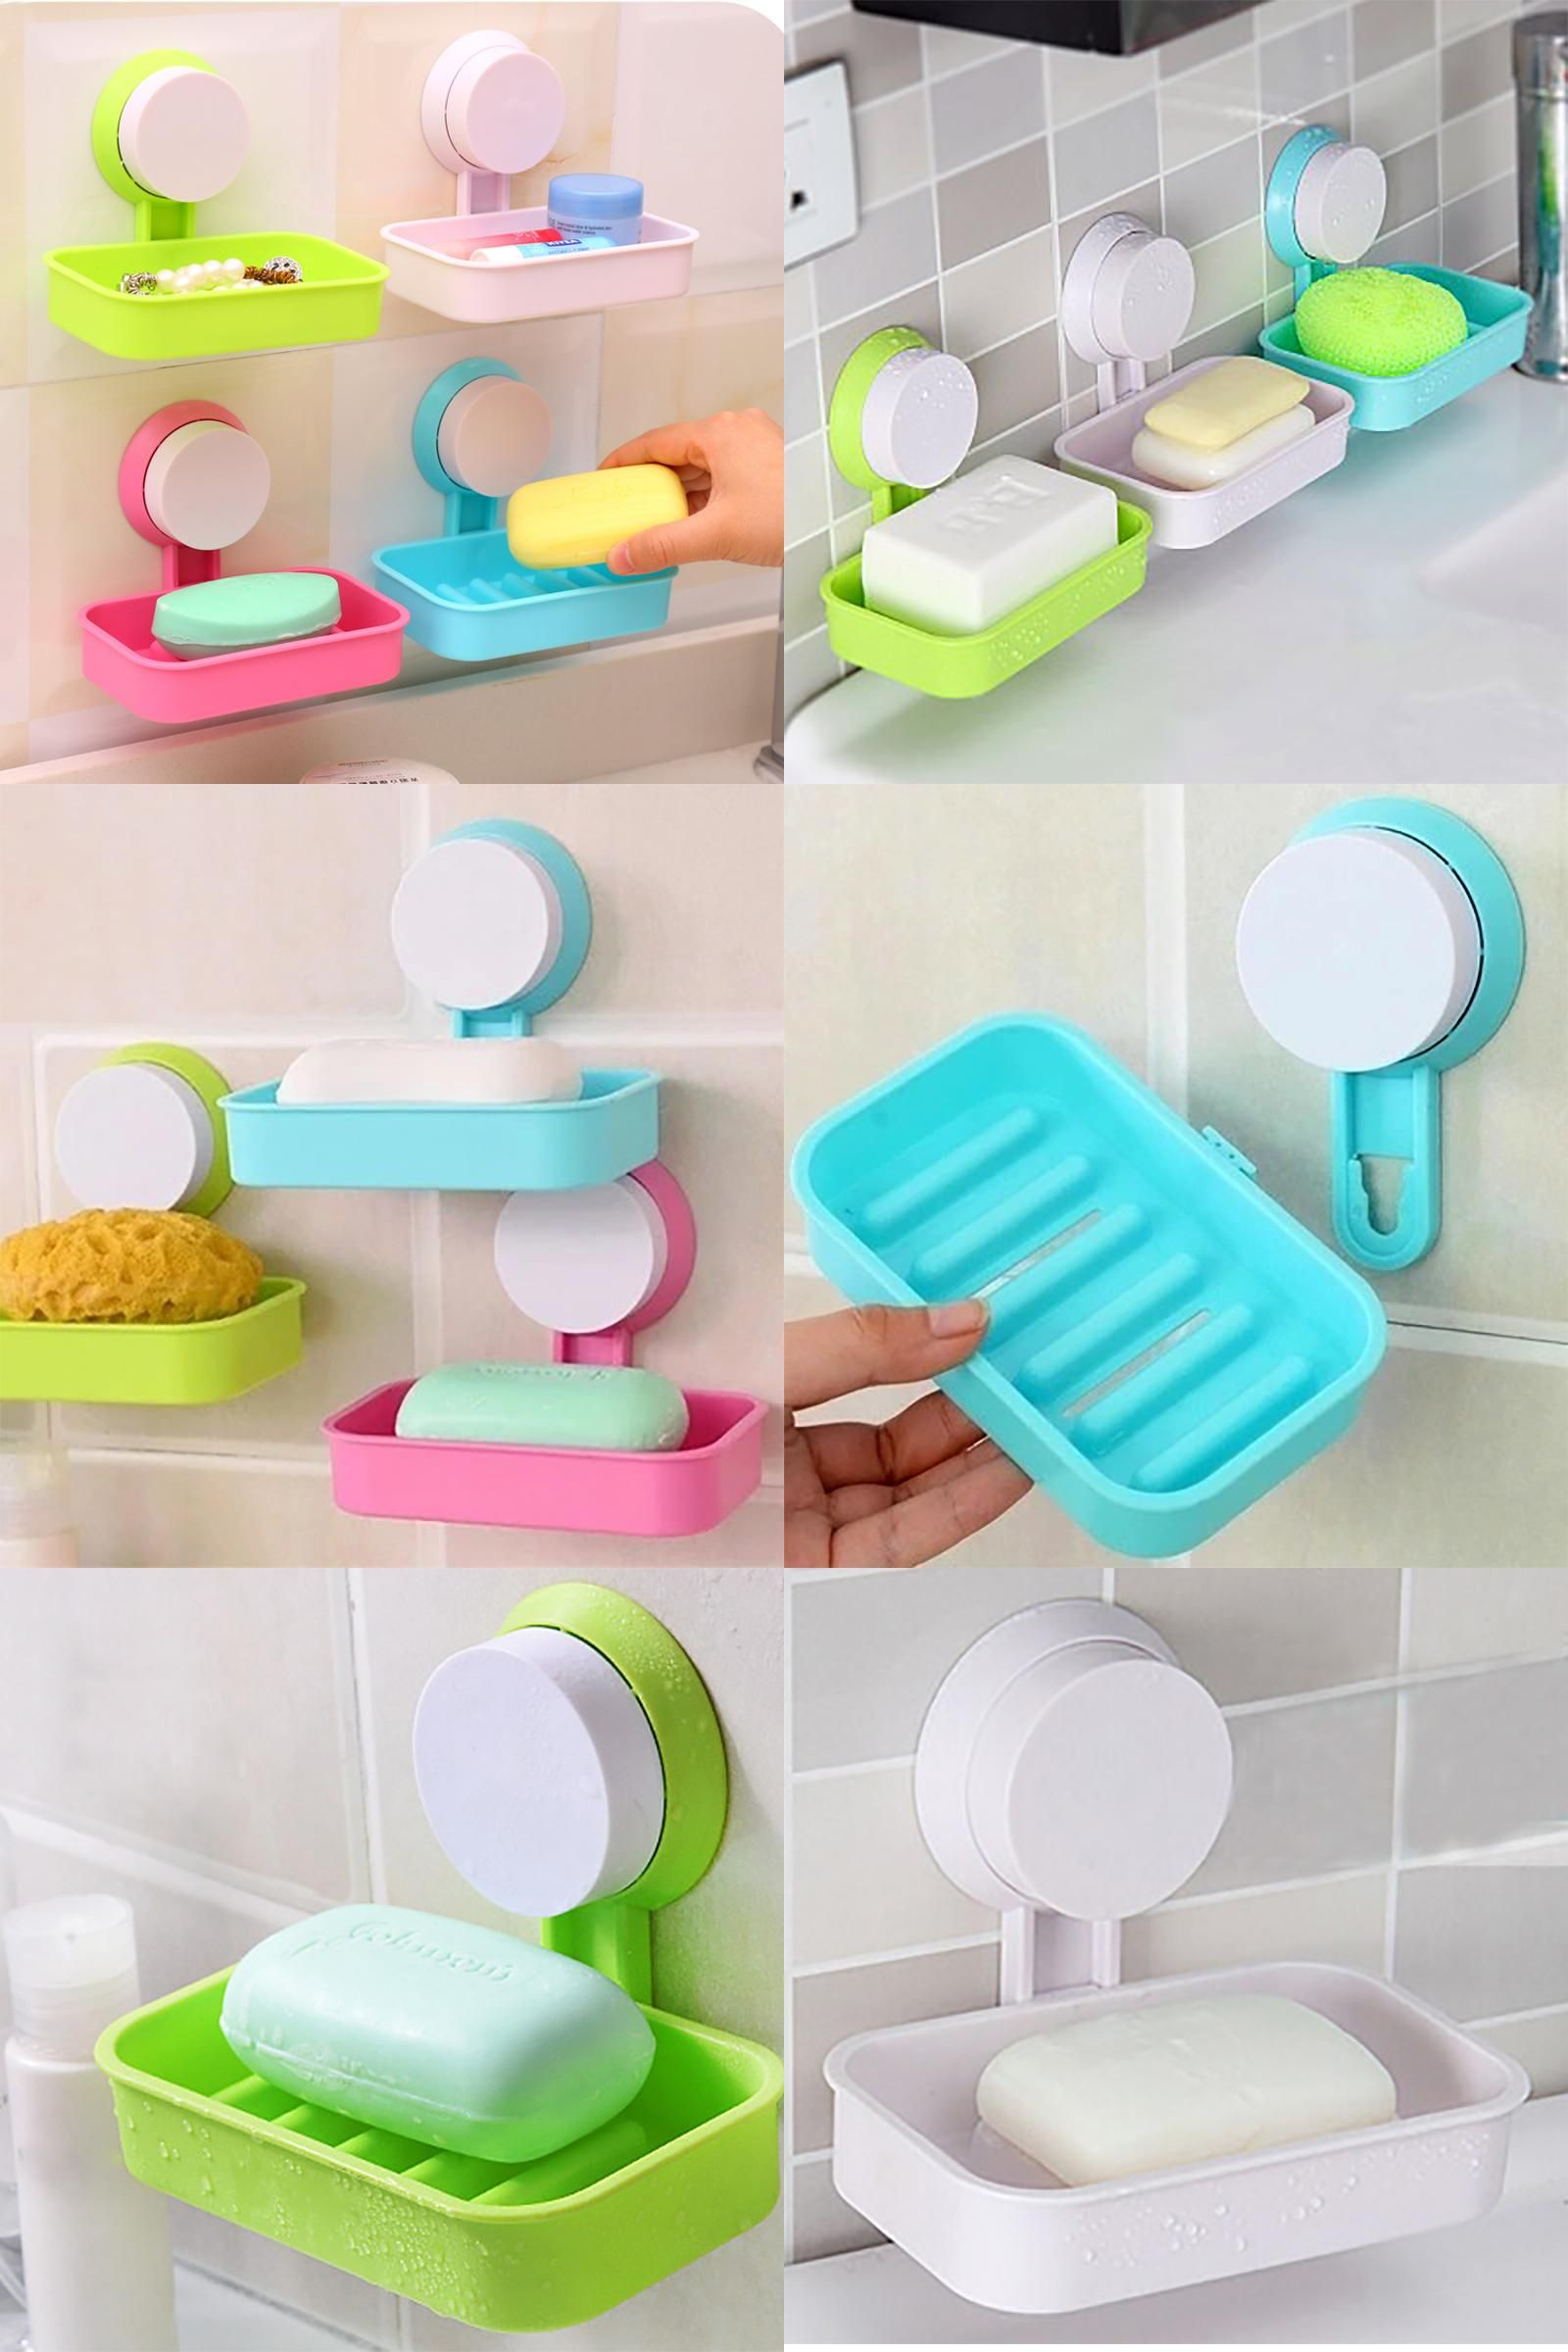 Visit to Buy] New Soap Dish Strong Suction Cup Wall Tray Holder Soap ...